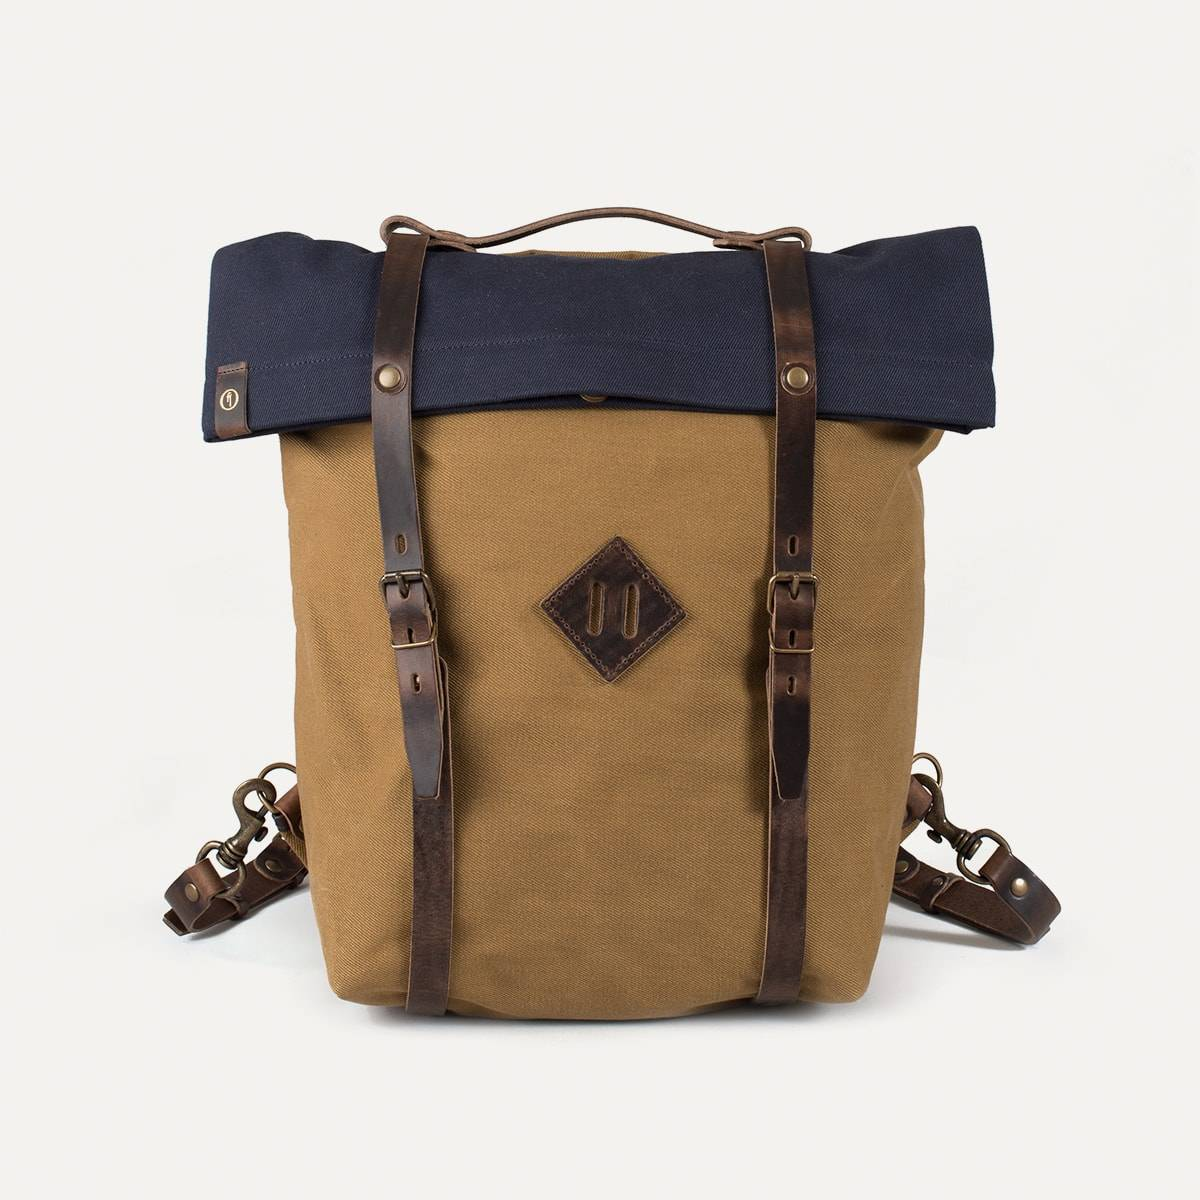 Blitz Motorcycles Scout Backpack - Navy/Camel (image n°1)